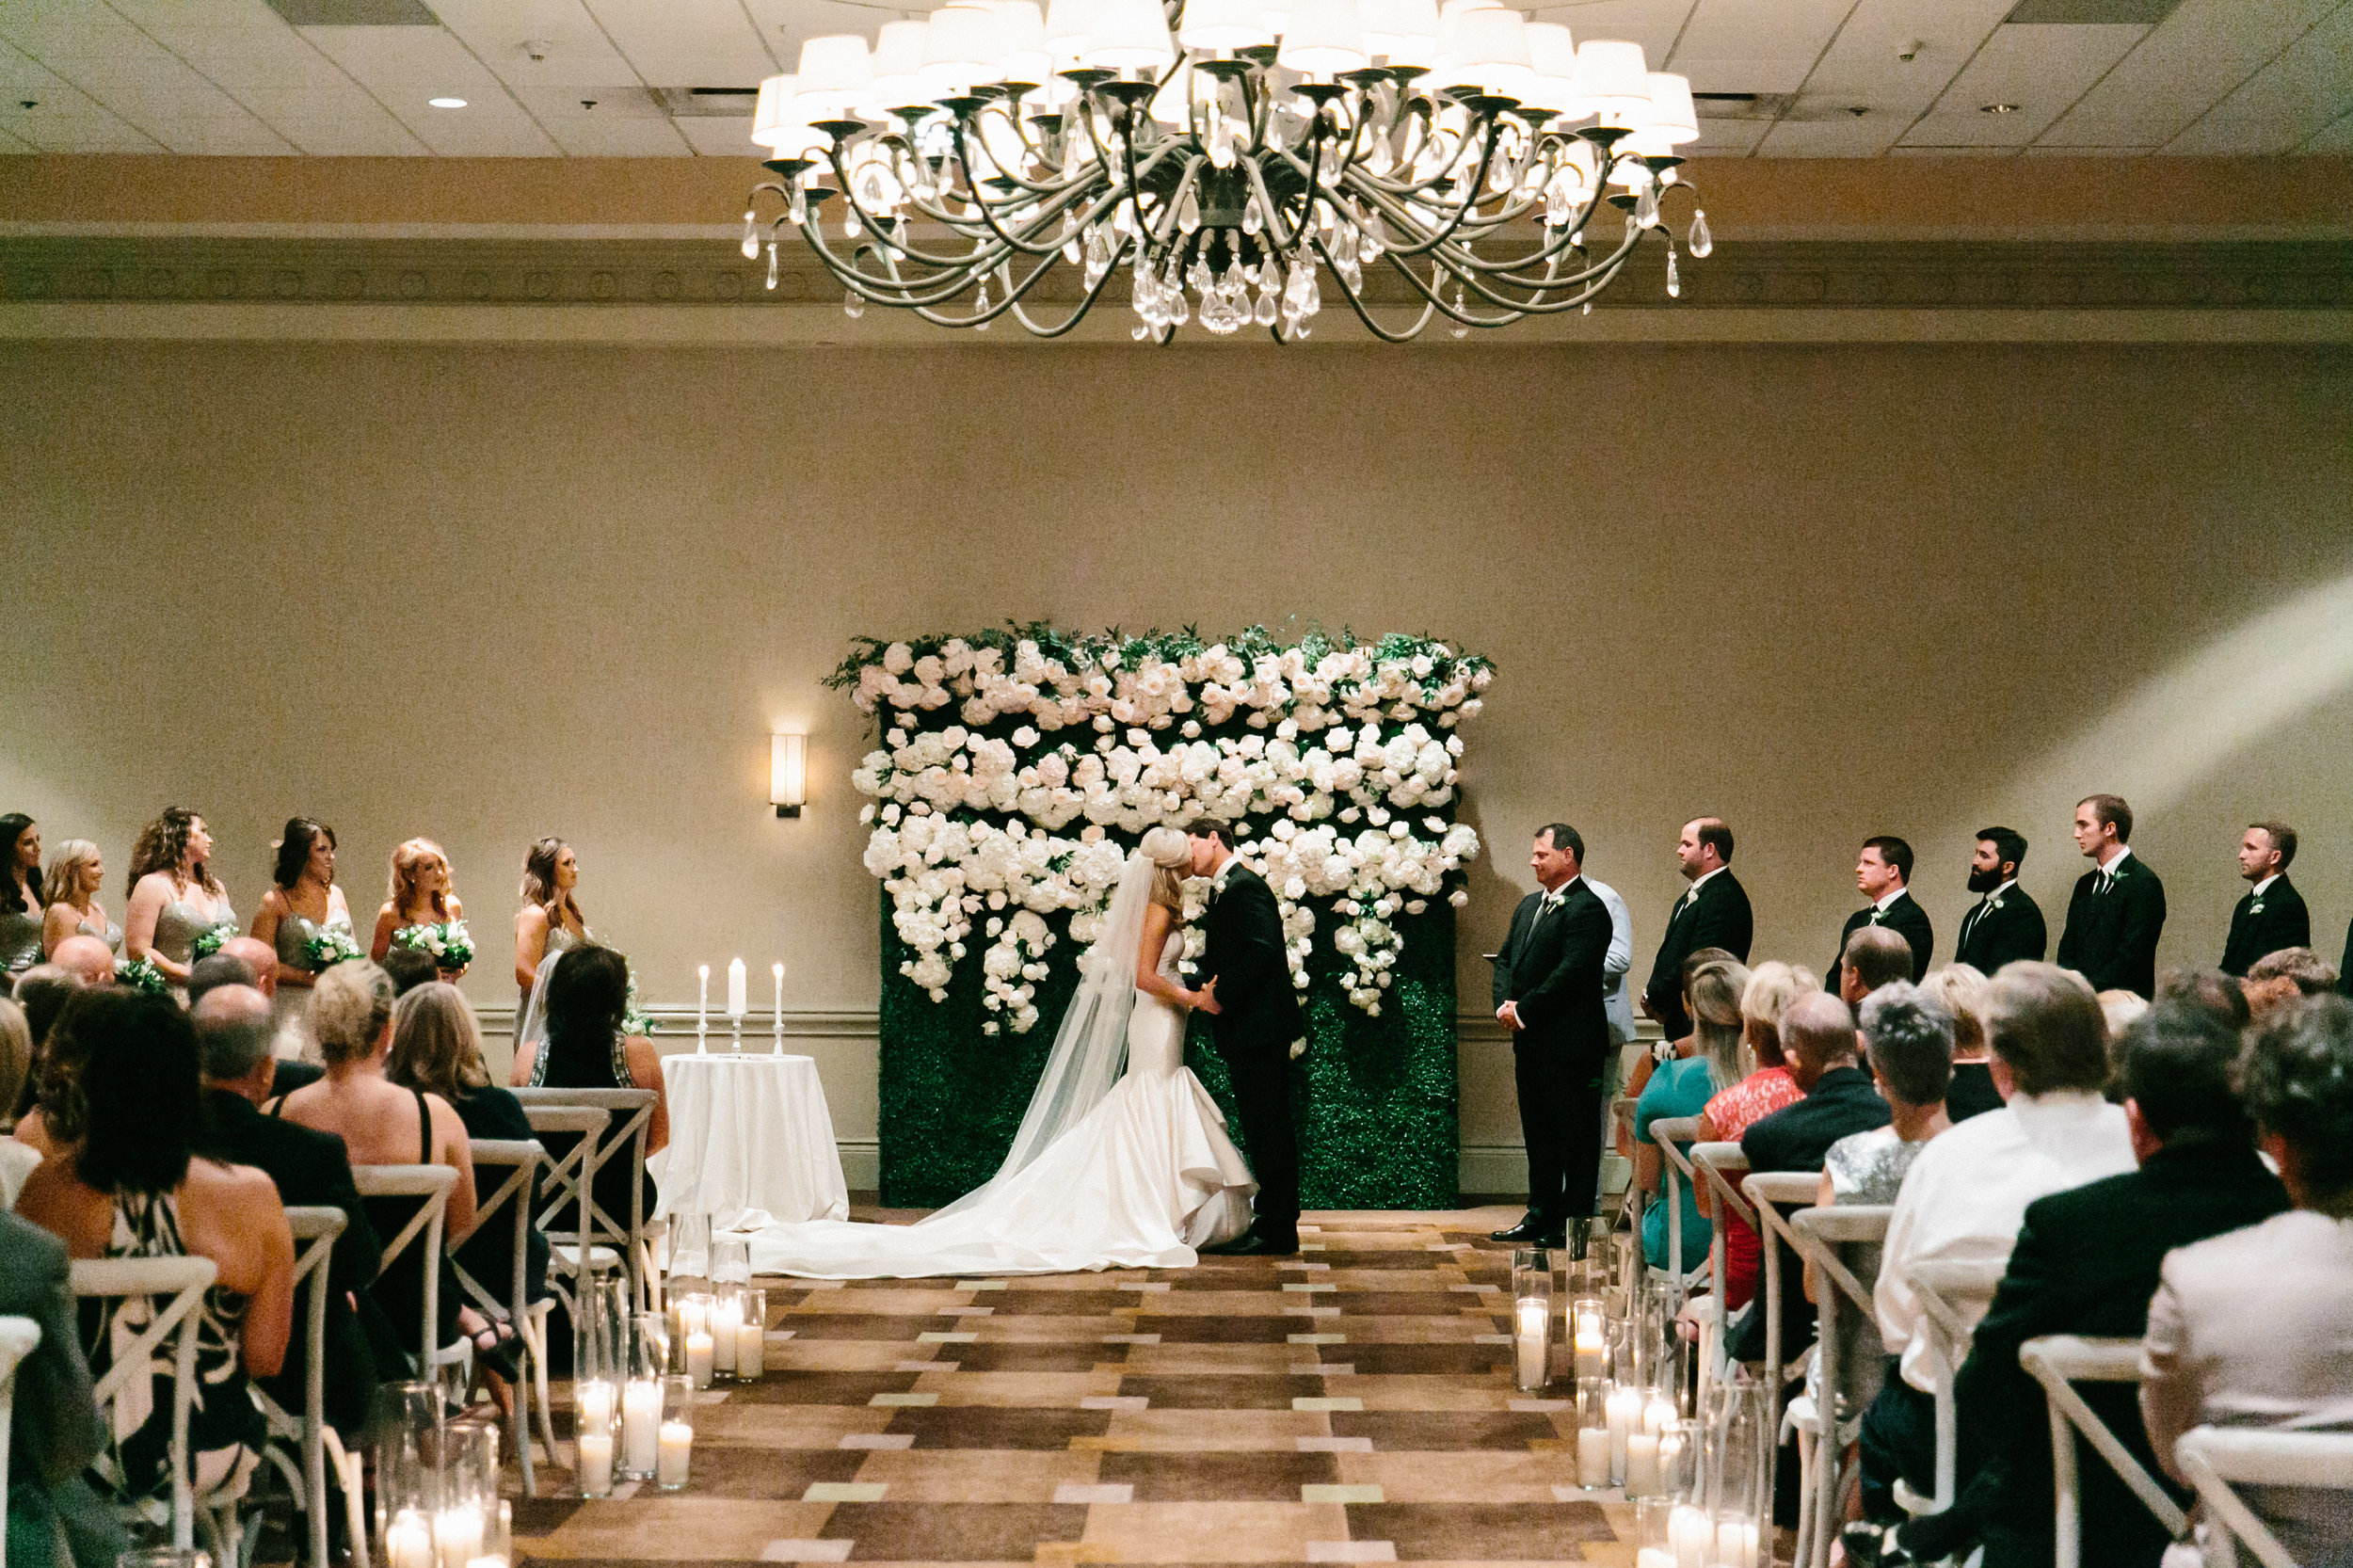 Westin Savannah Harbor Wedding in Georgia by Posh Petals & Pearls